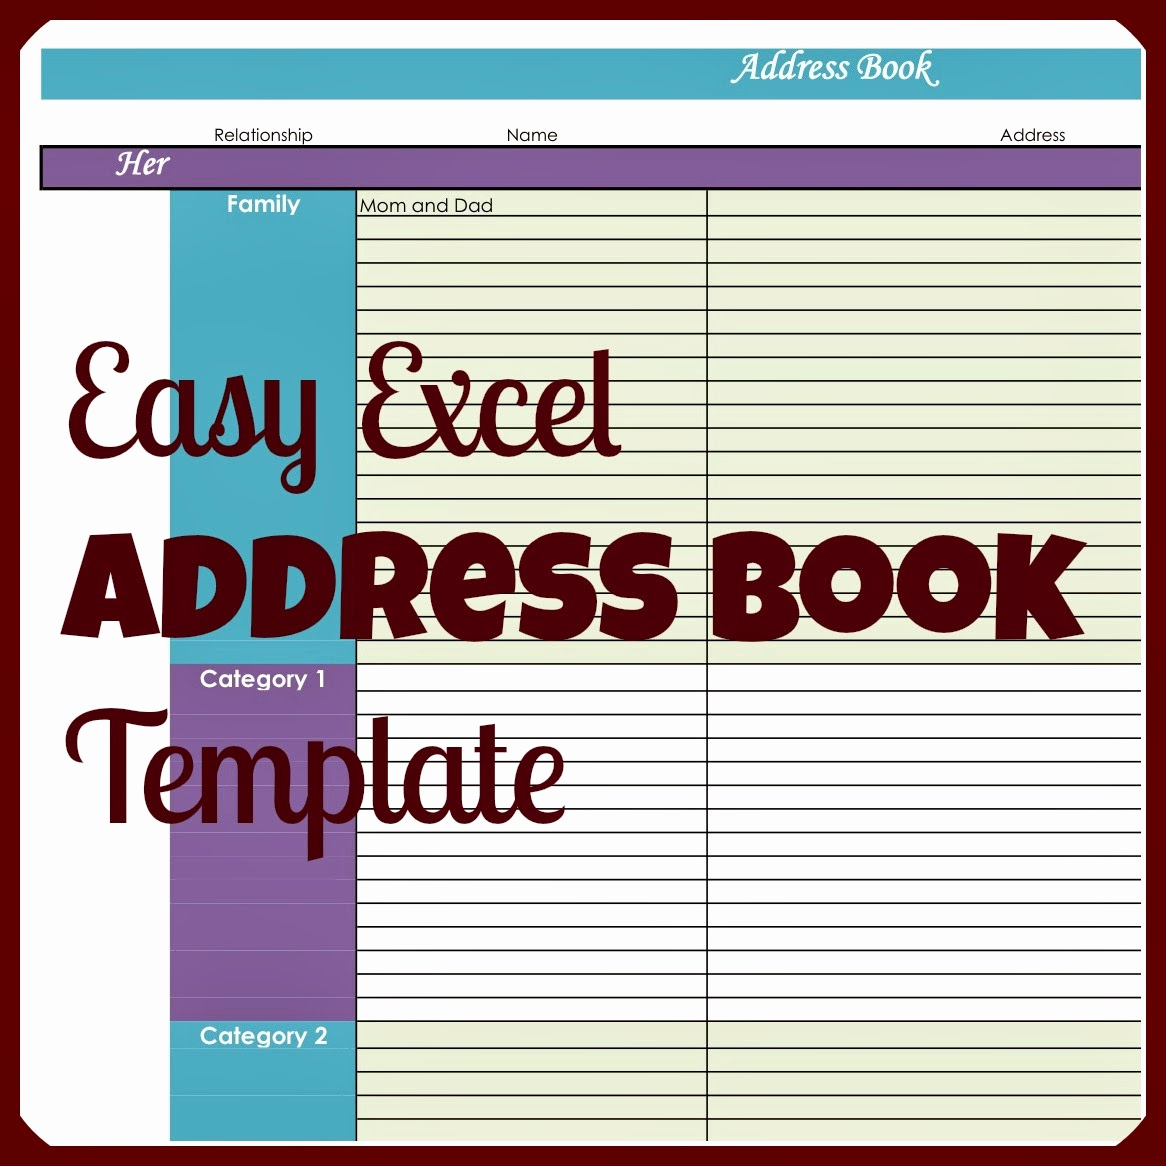 Address Book Template Excel Beautiful Laura S Plans Easy Excel Address Book Template